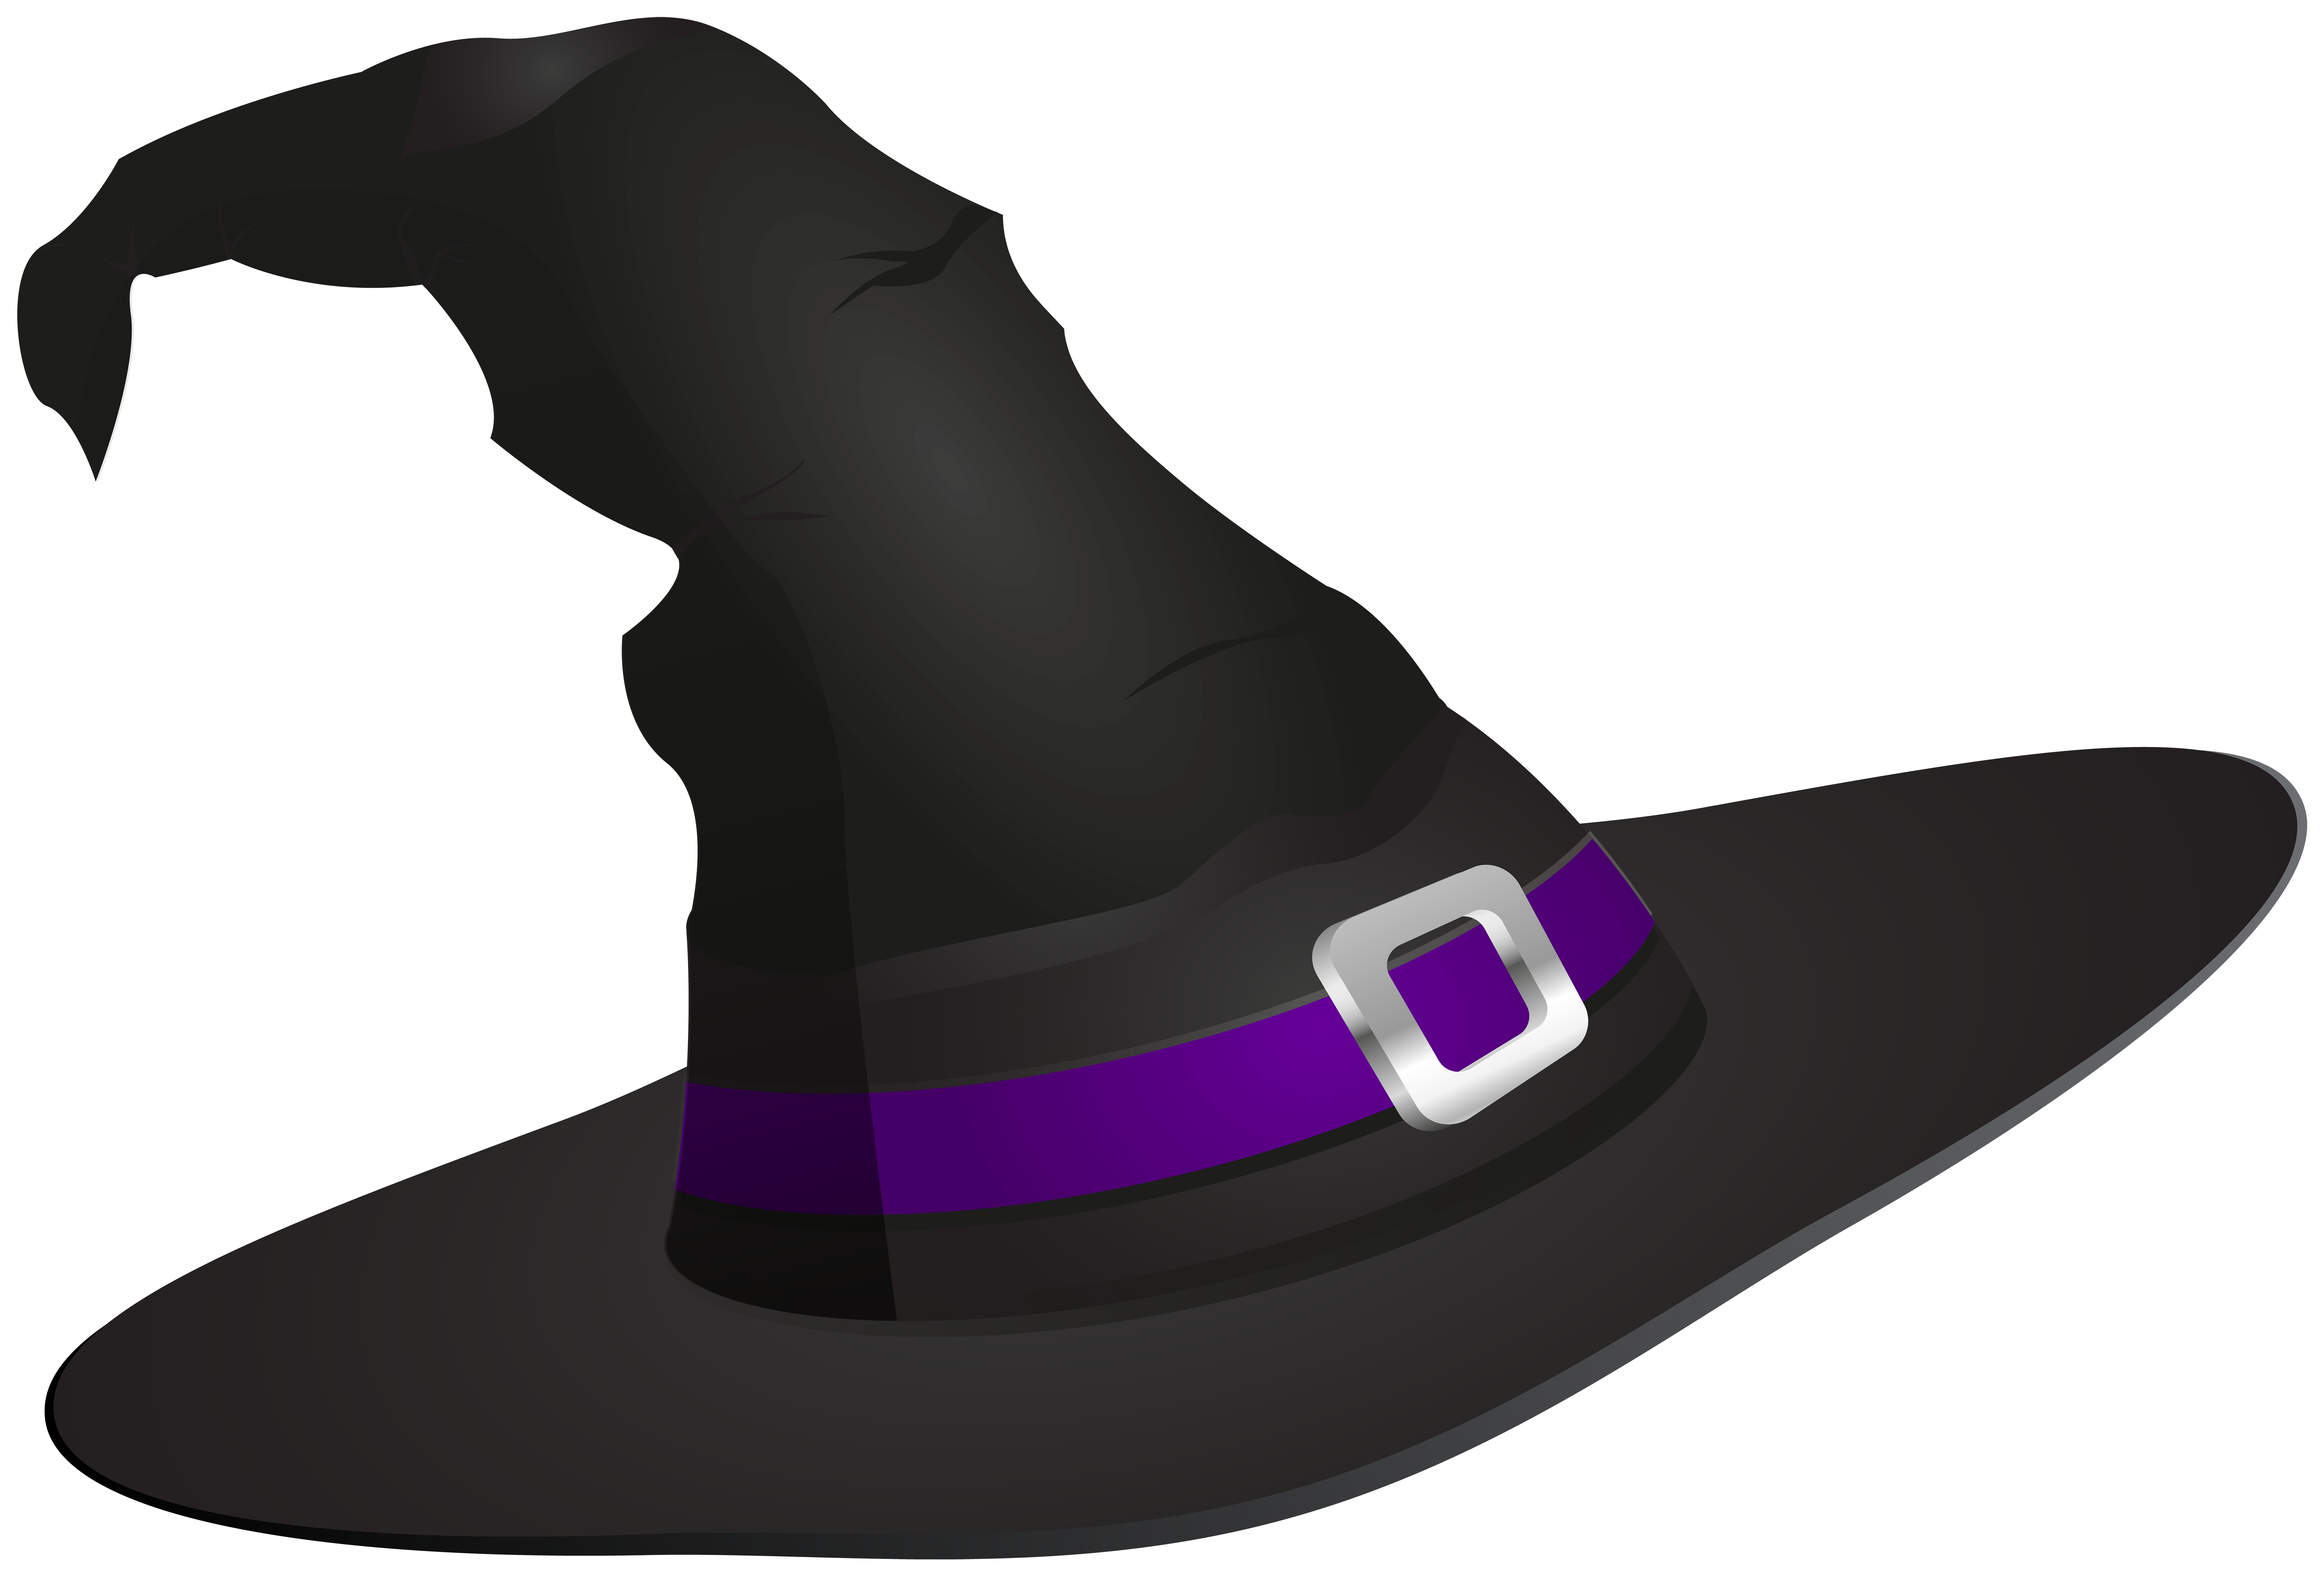 Halloween witch hat png. Transparent clip art image